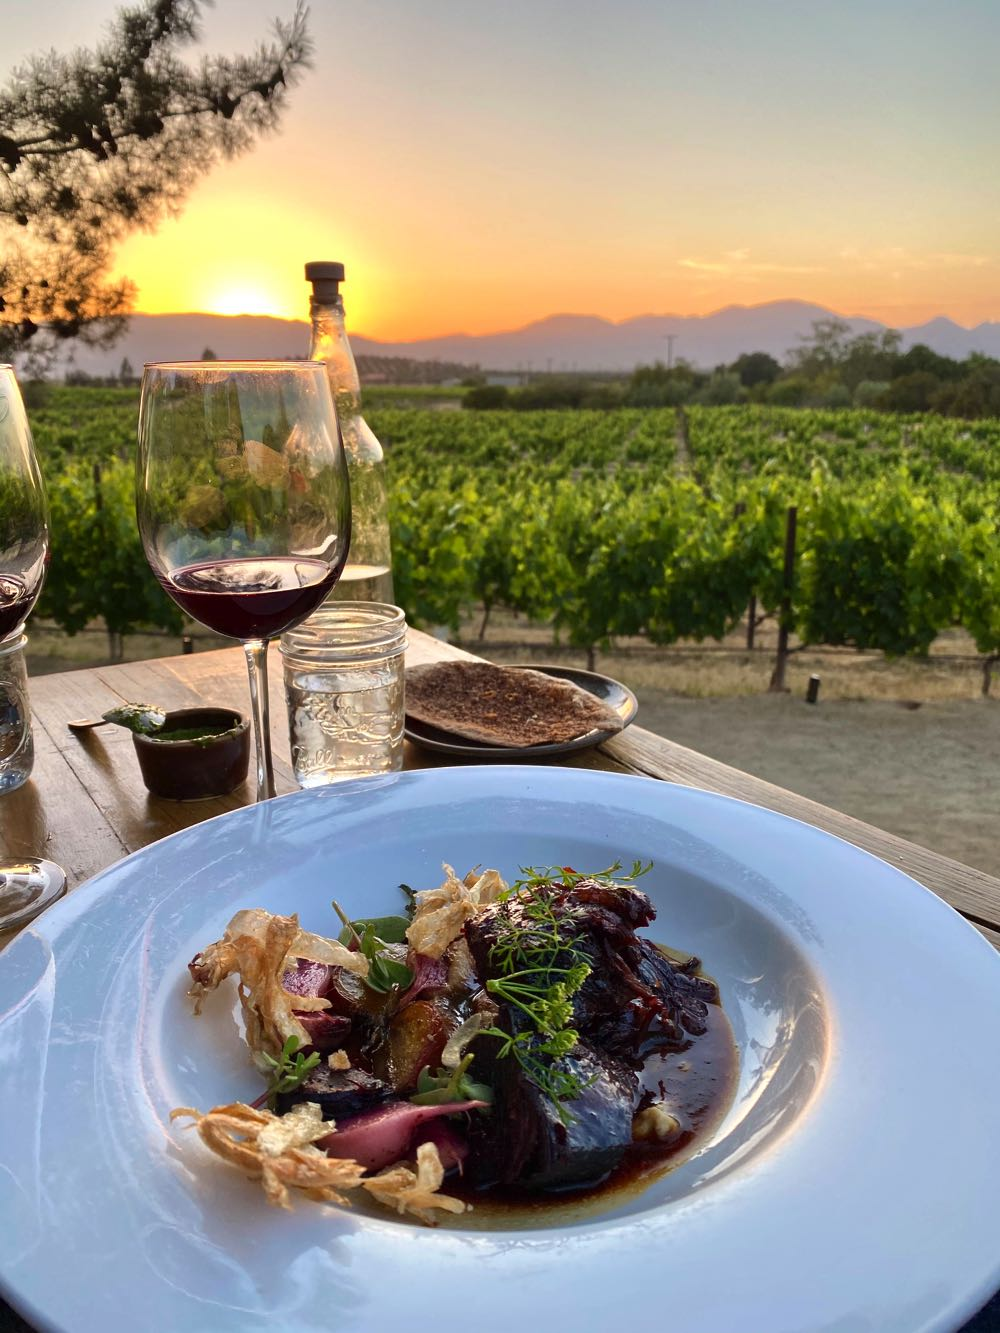 deckmans where to eat in valle de guadalupe